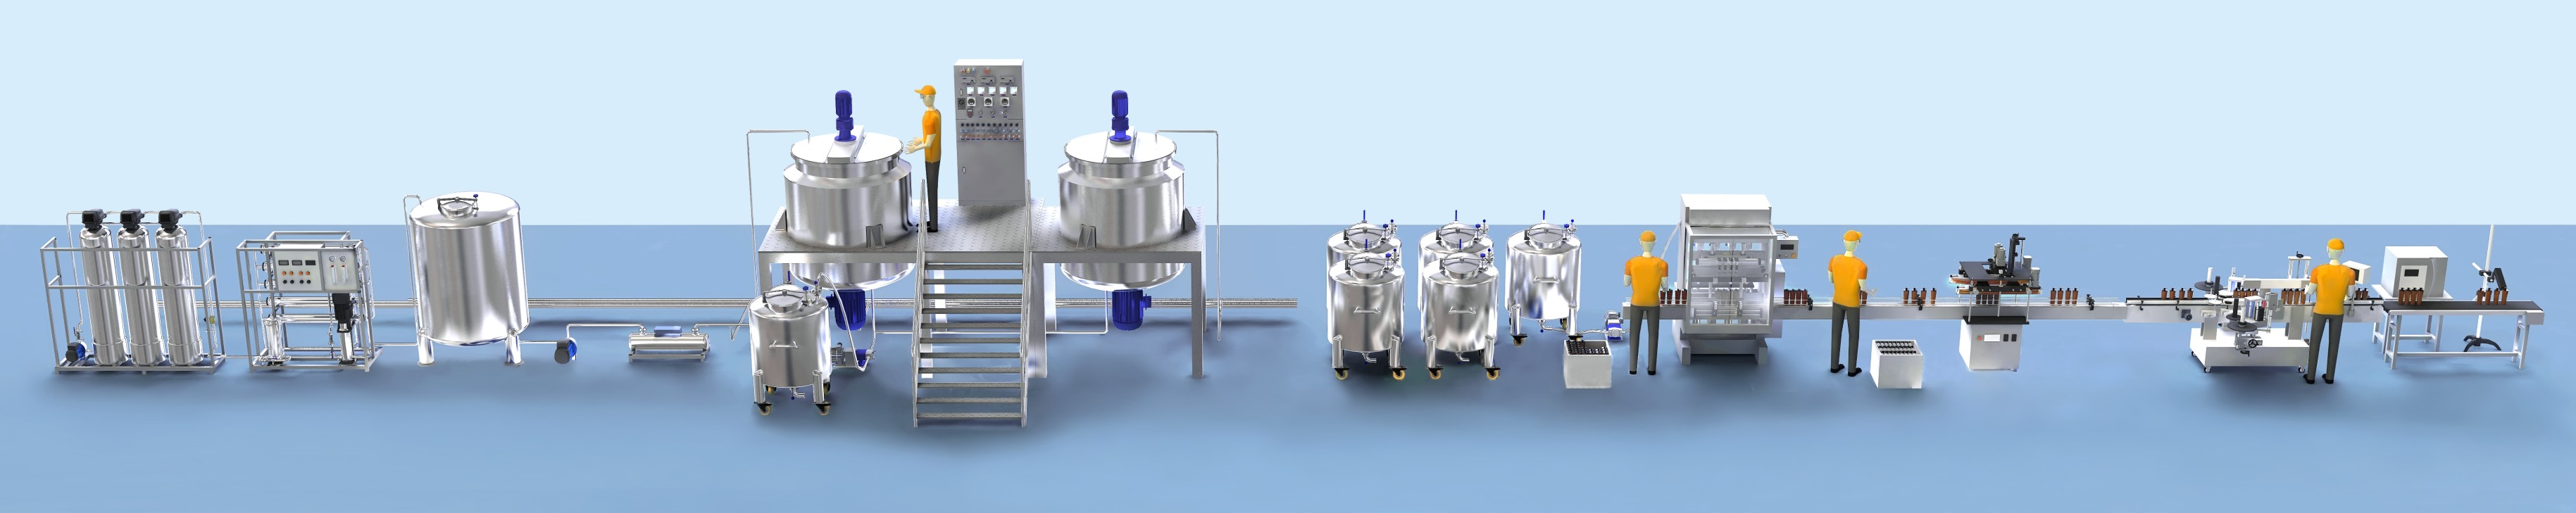 Jinzong Machinery washing skin cleaner making mixer manufacturers for paint and ink-1